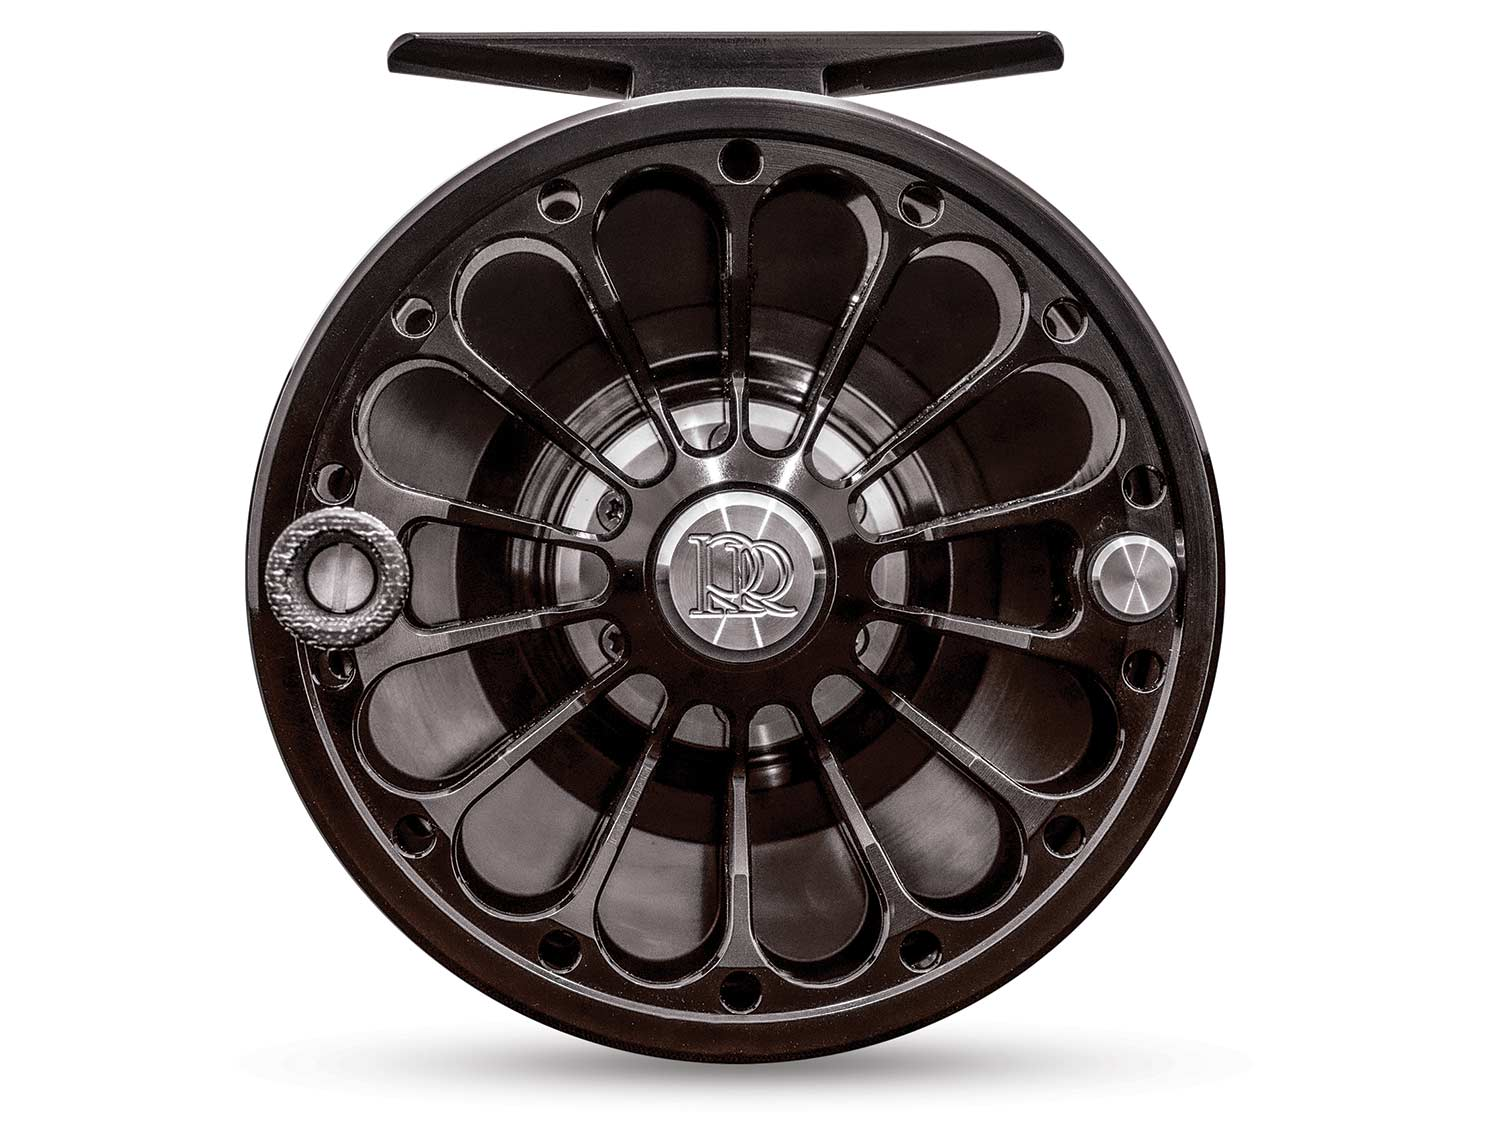 Ross San Miguel Fly Reel on a white background.